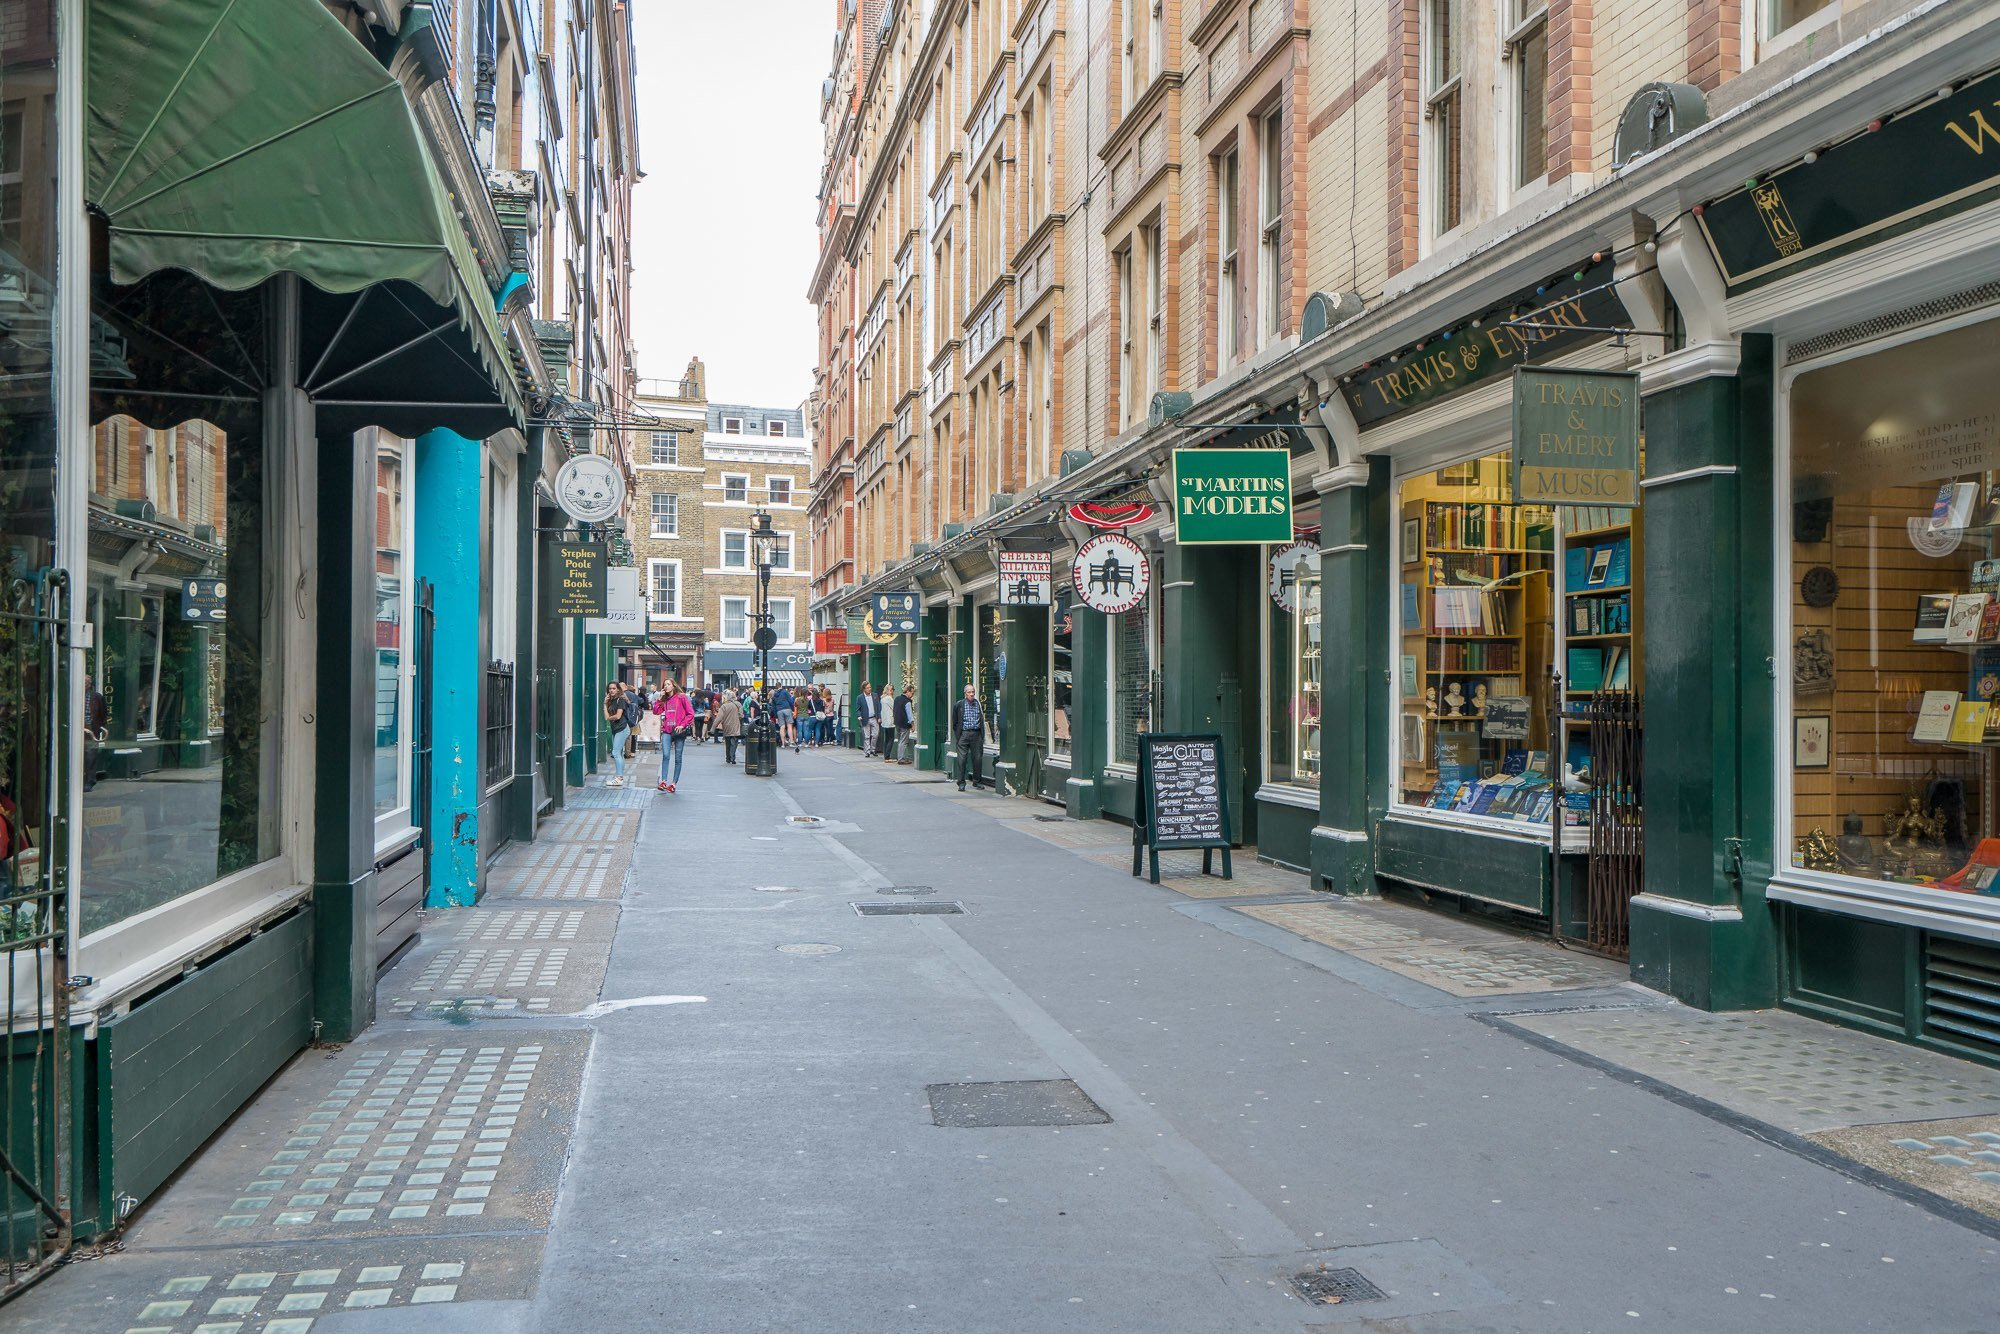 Cecil Court in London is a pedestrian street lined with bookstores that is said to have inspired Harry Potter's Diagon Alley.